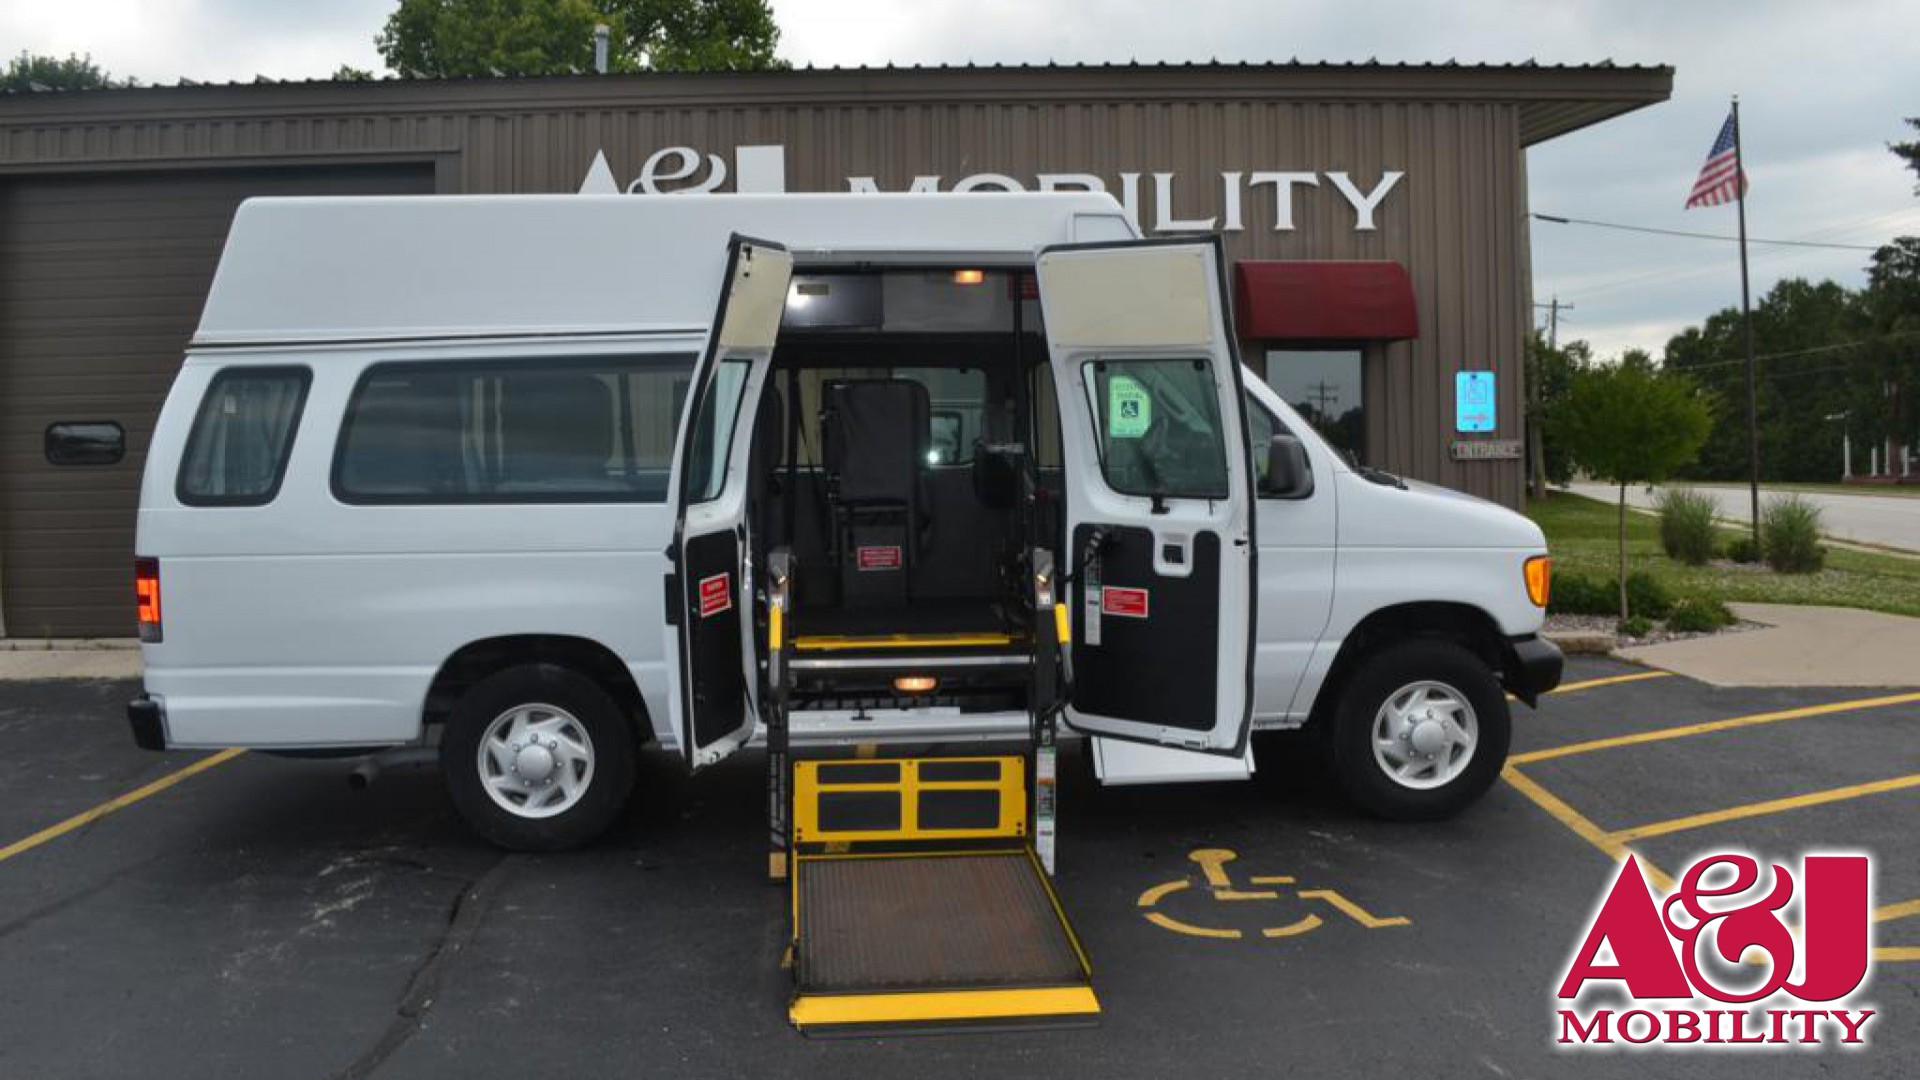 hight resolution of wheelchair van for sale 2006 ford econoline wagon stock 6da31900 a j mobility